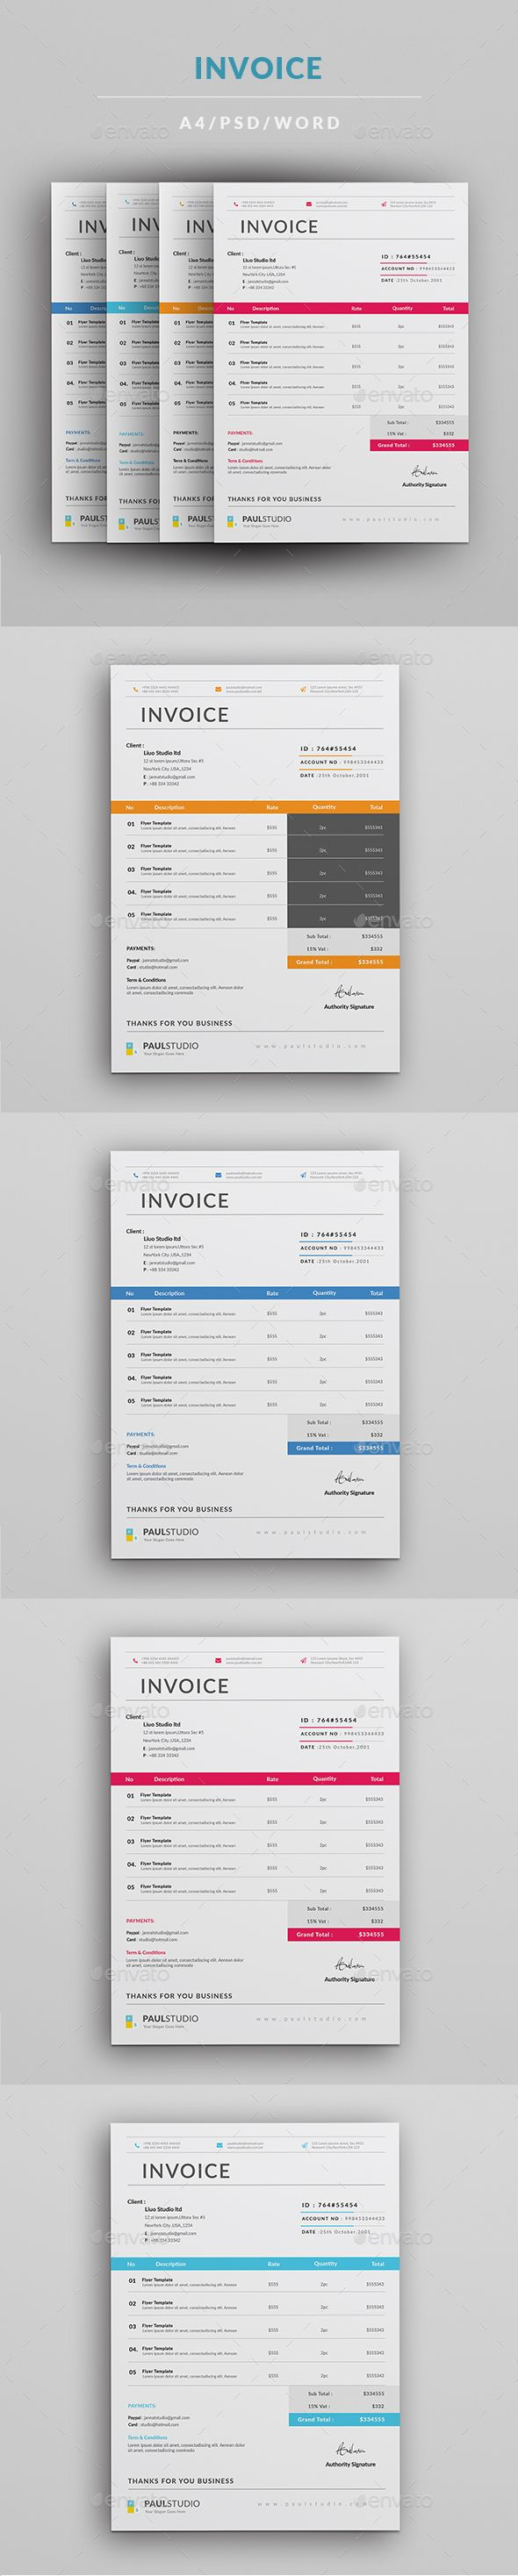 #Invoice - #Proposals & Invoices #Stationery Download here: https://graphicriver.net/item/invoice/19162953?ref=alena994